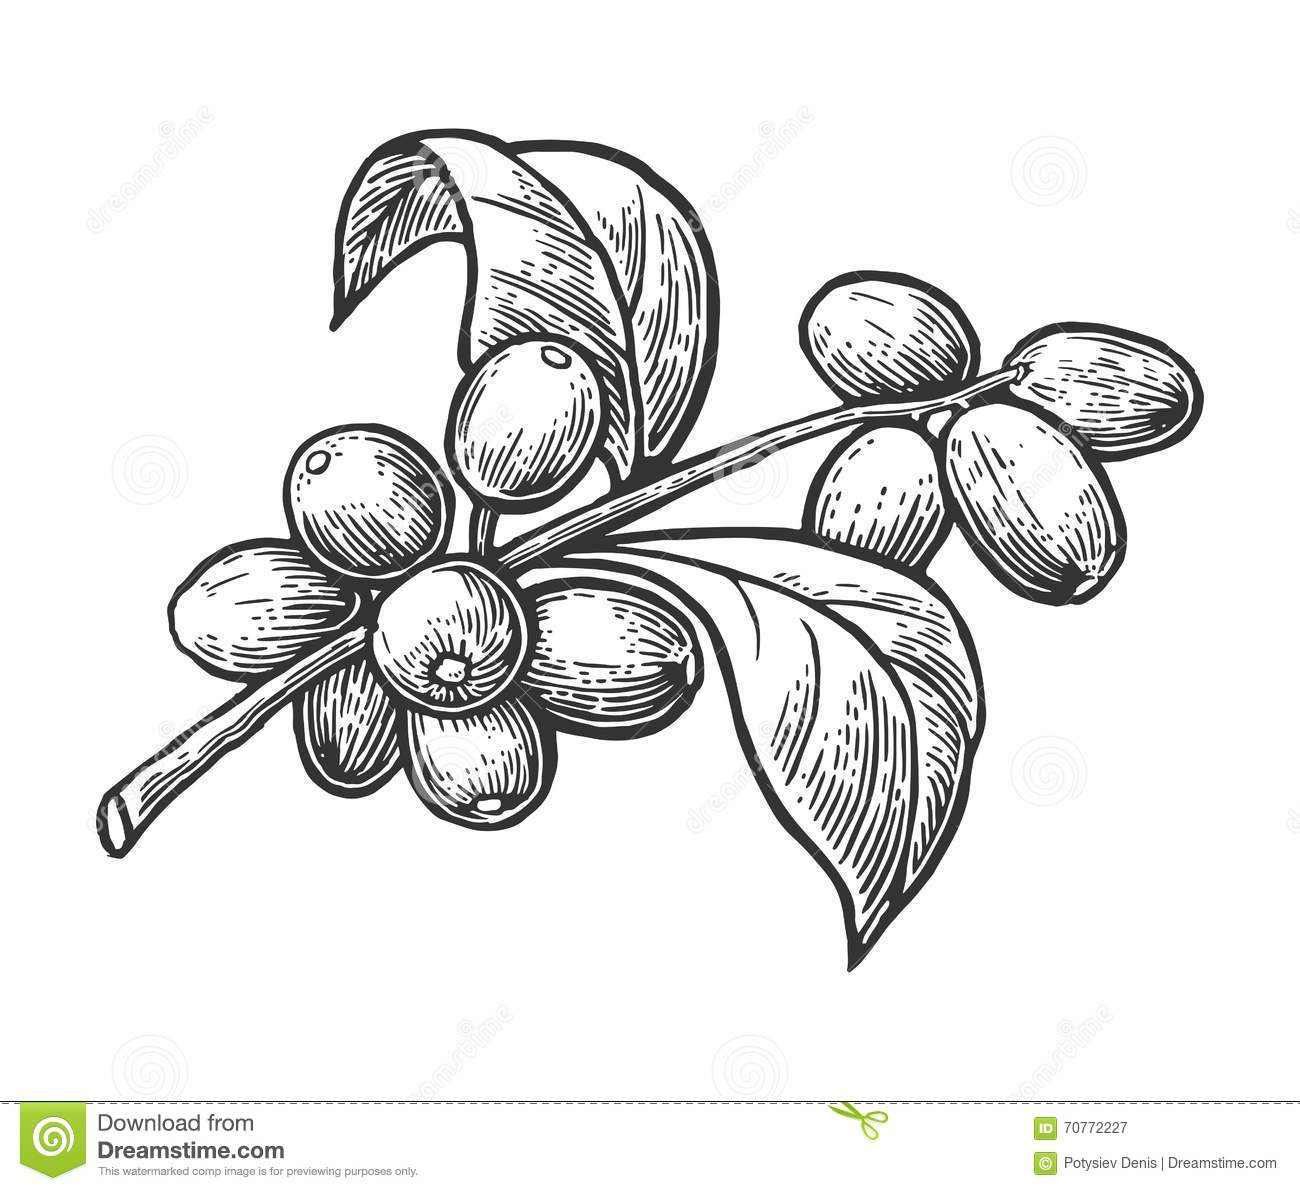 It is a graphic of Monster Coffee Plant Drawing